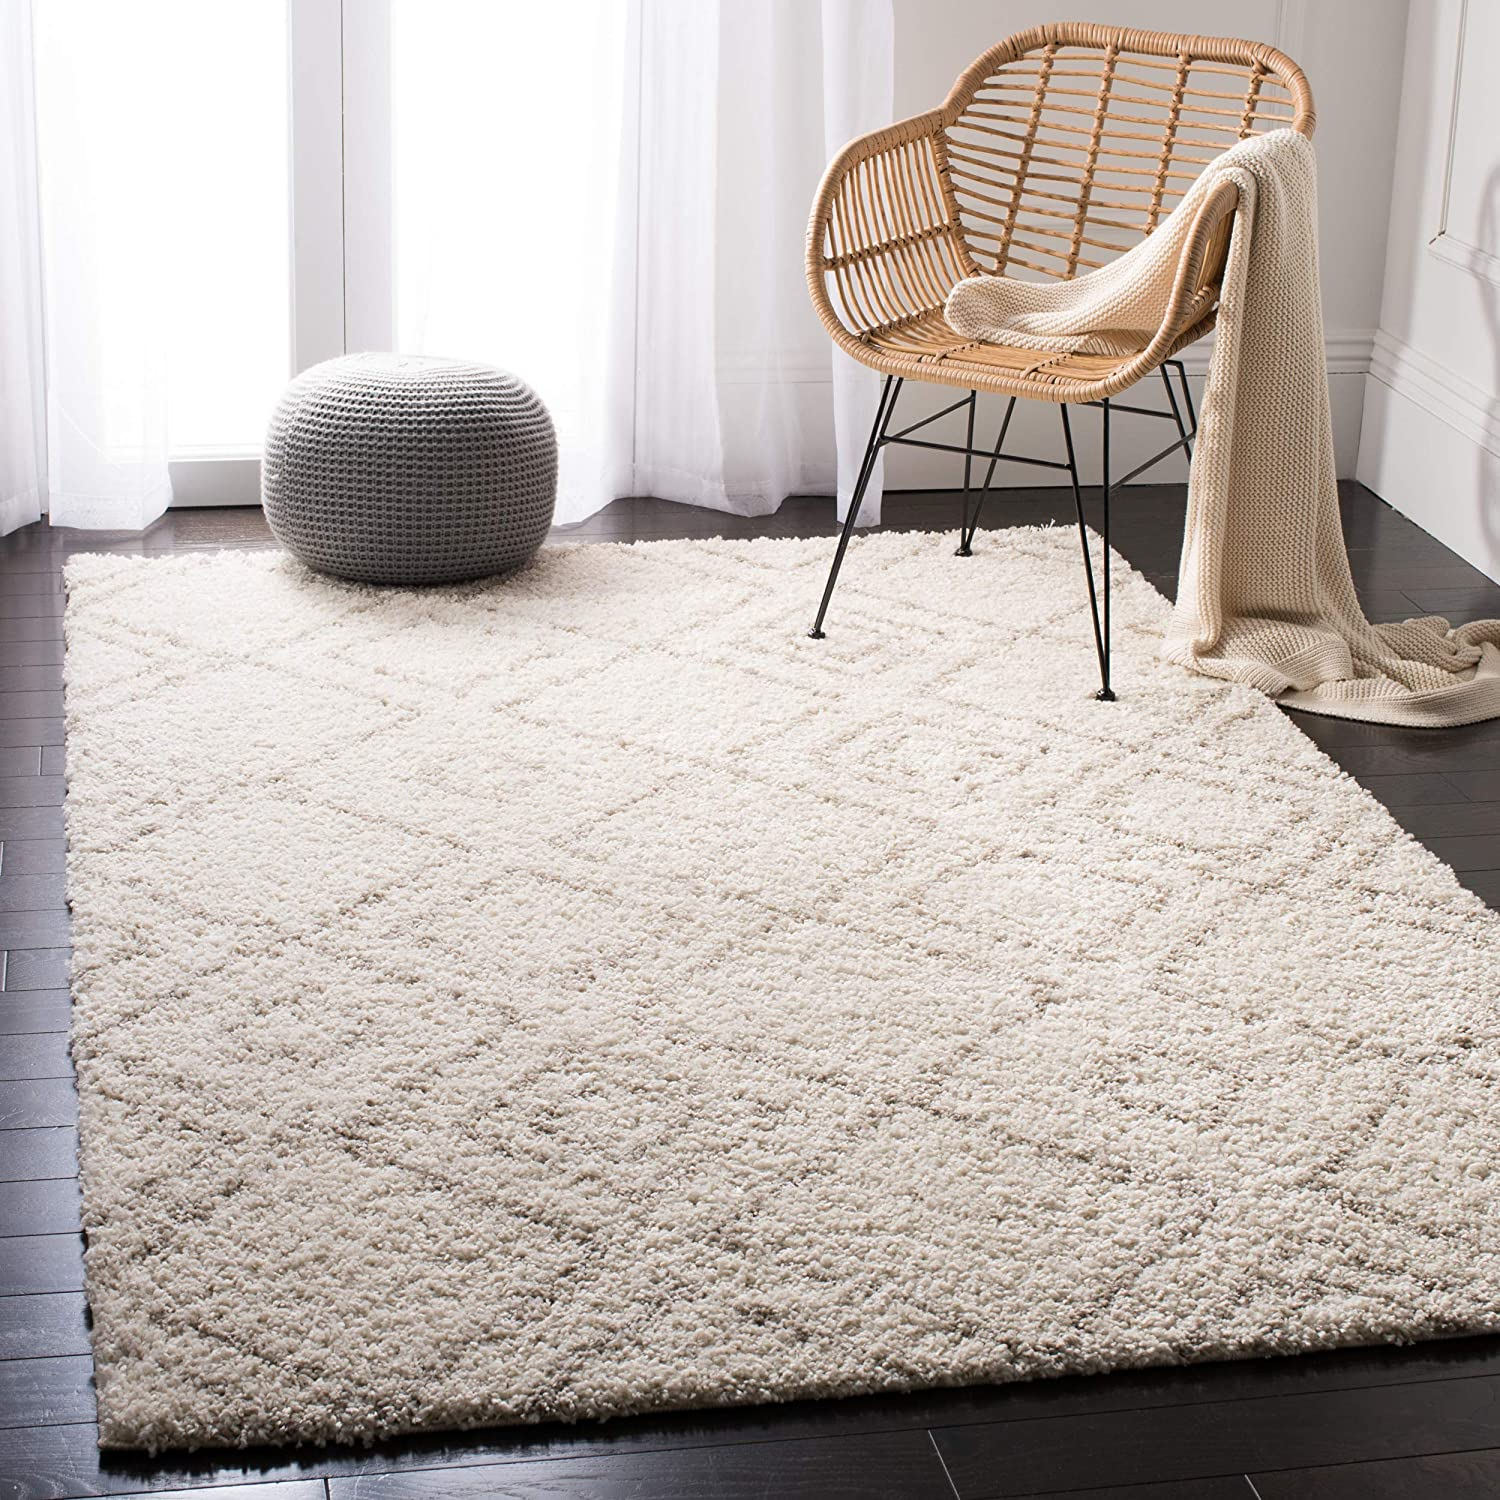 "Safavieh Arizona Shag Collection ASG744A Southwestern Diamond Geometric Ivory and Beige Area Rug (5'1"" x 7'6"")"